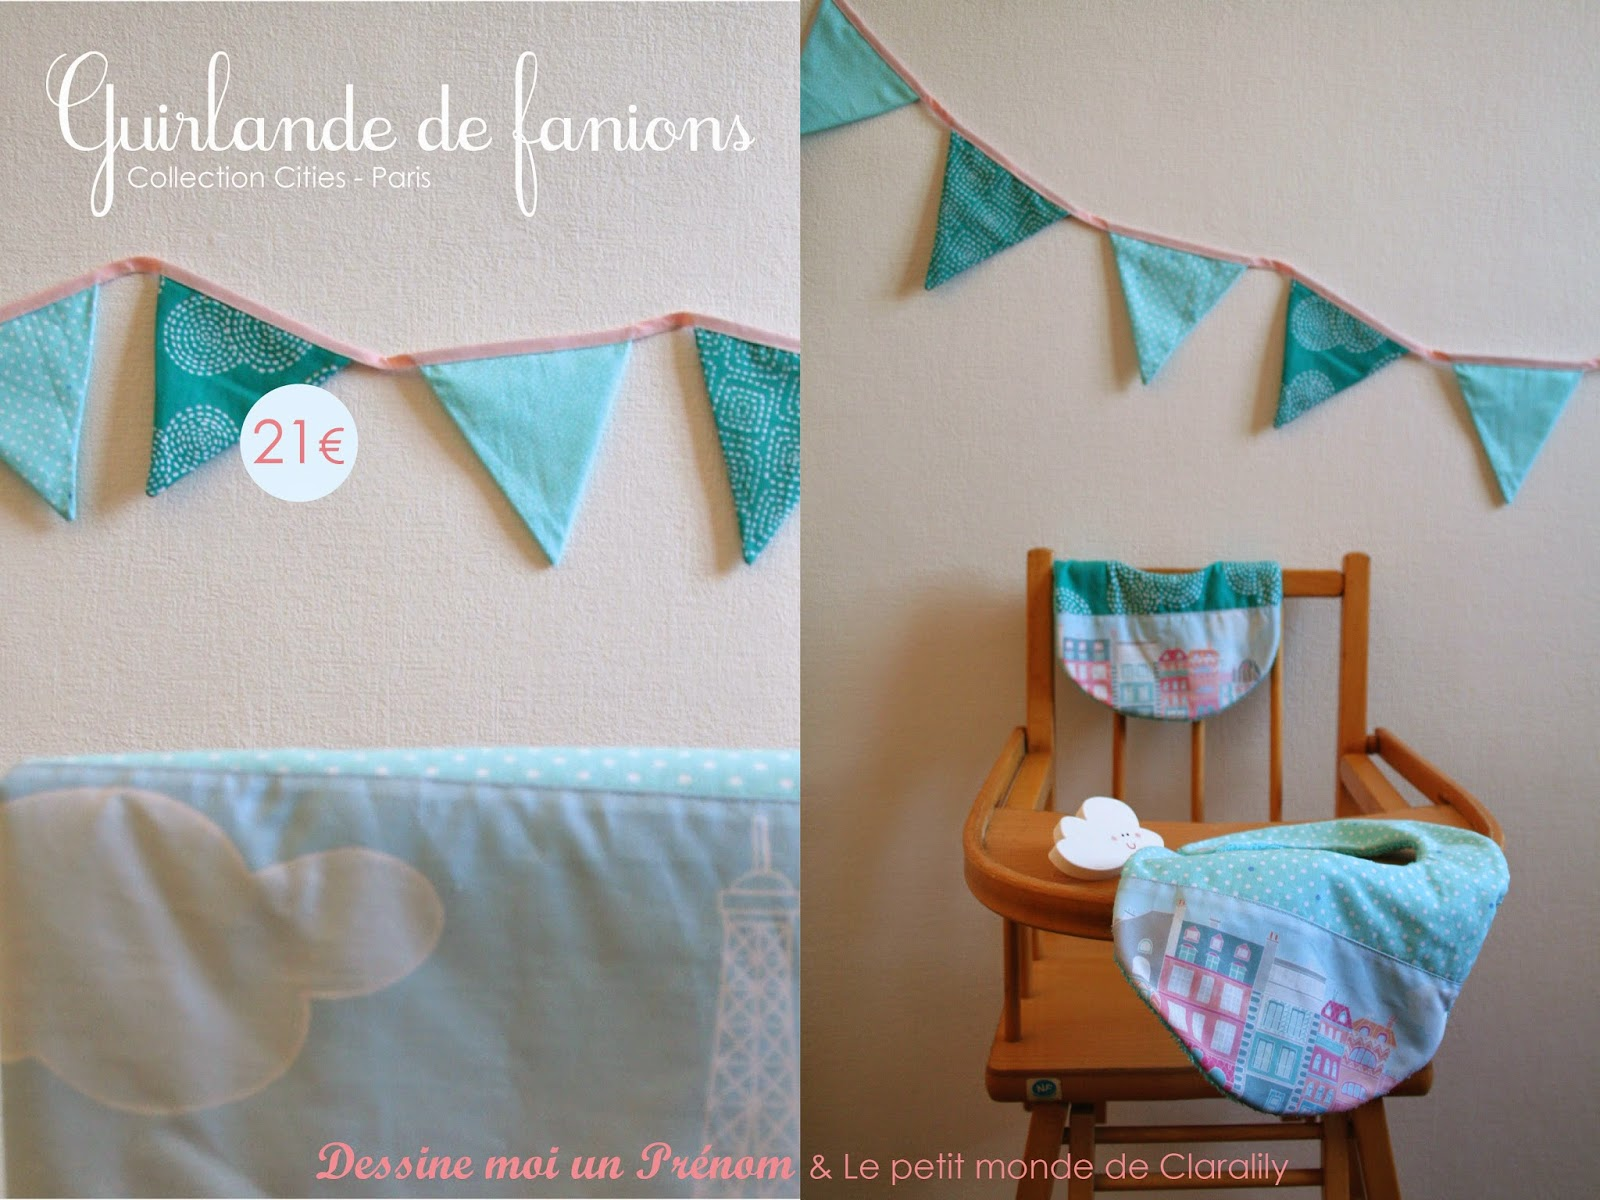 http://www.alittlemarket.com/decoration-pour-enfants/fr_guirlande_fanions_turquoise_collection_cities_paris_-12066975.html